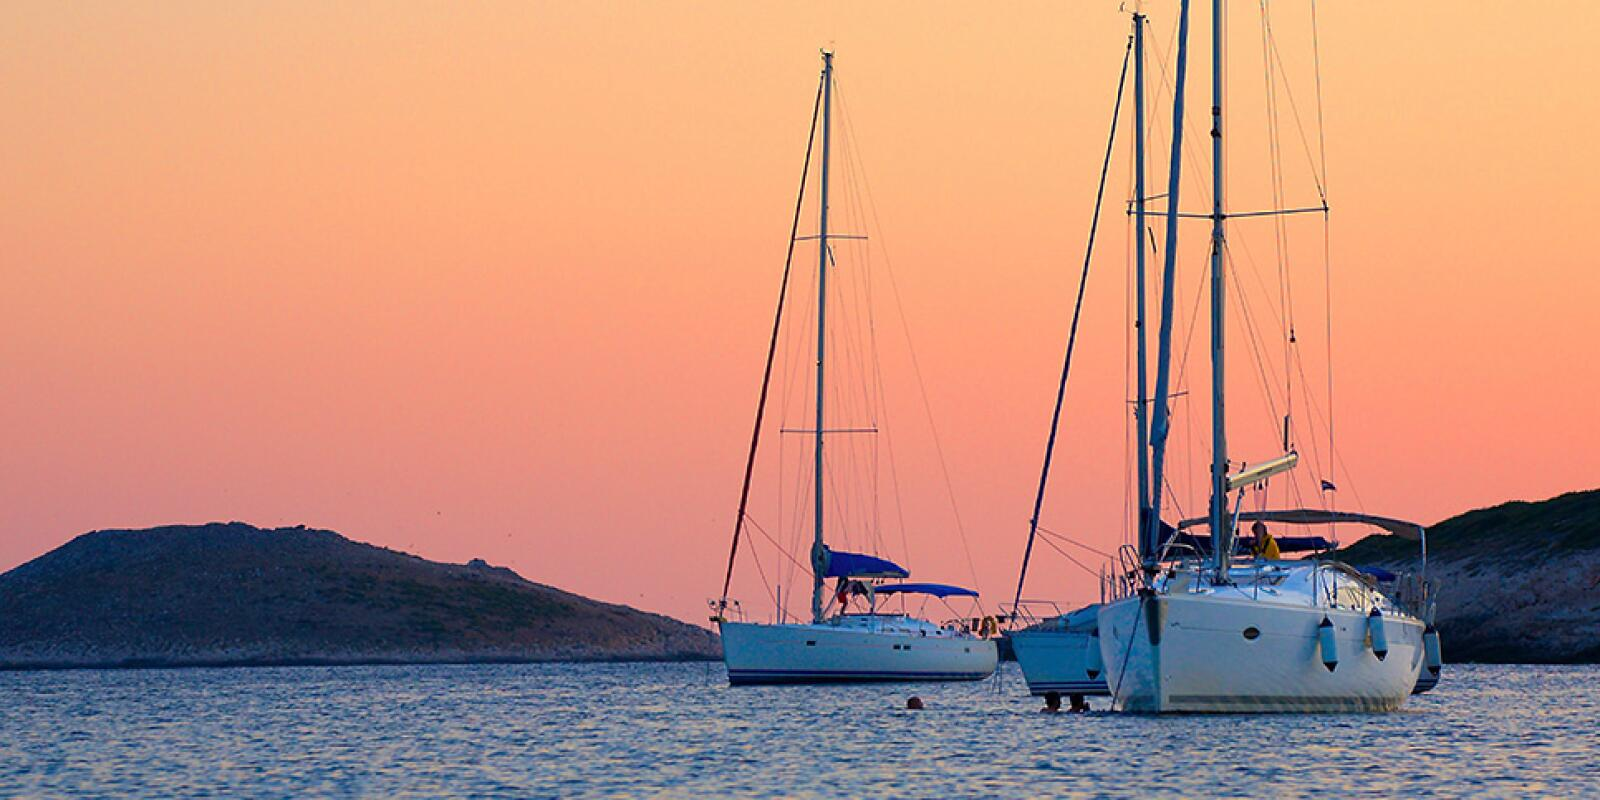 All inclusive: Sailing holidays in French Riviera and Porquerolles